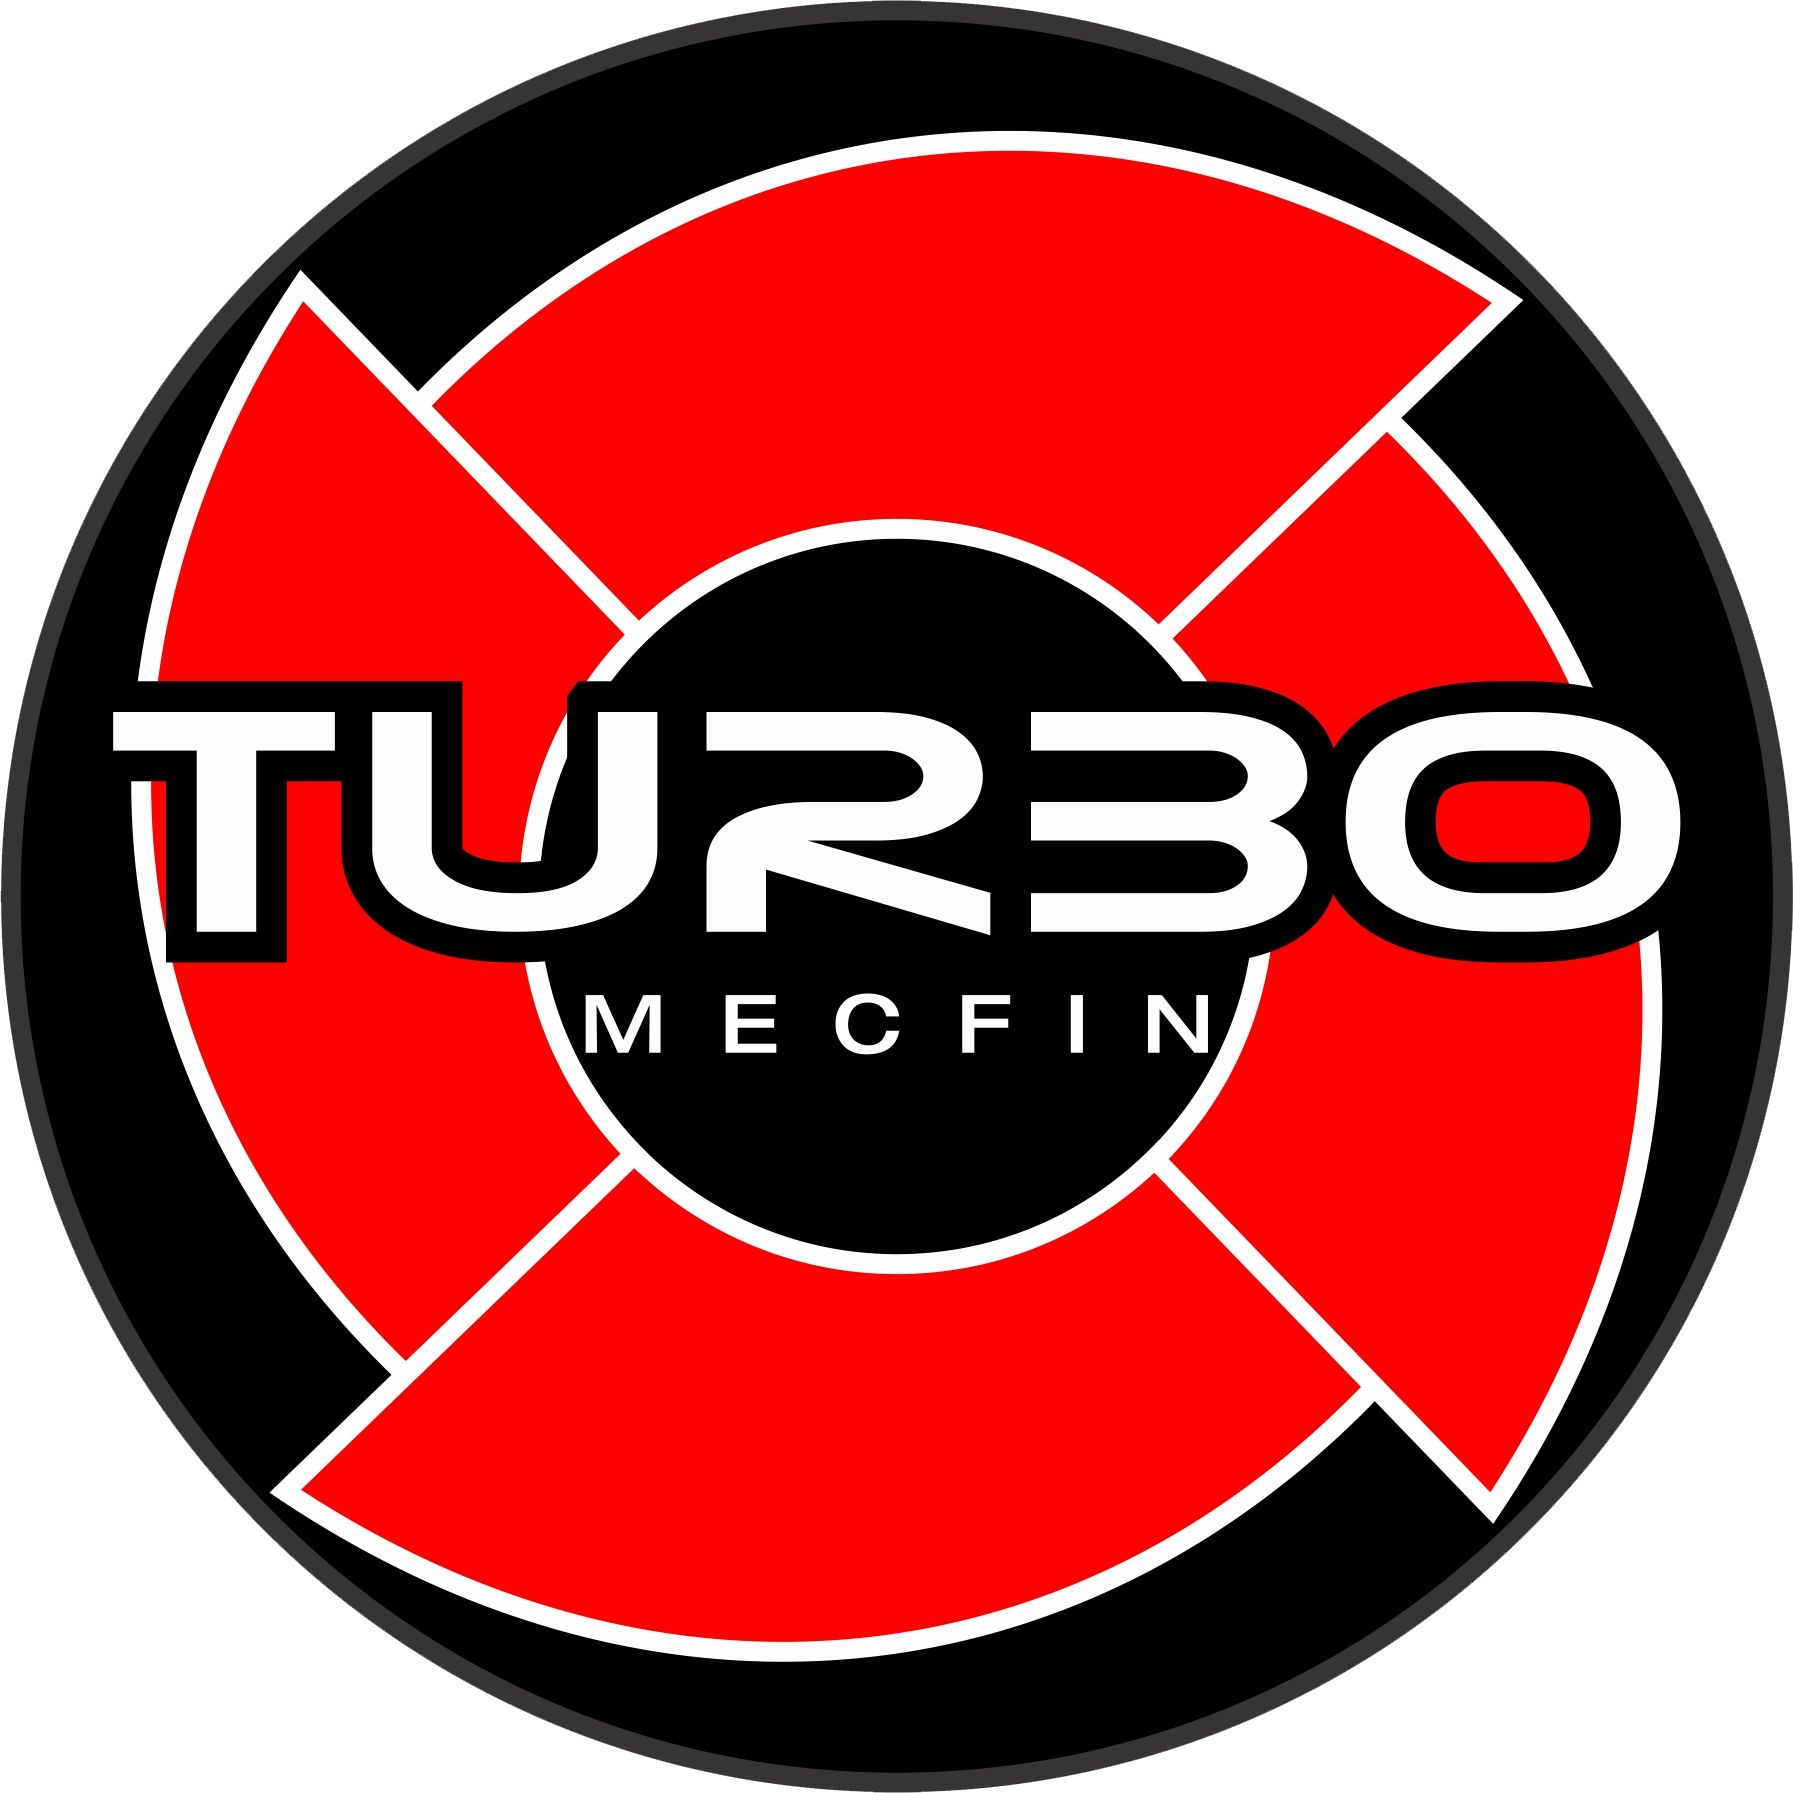 turbo mecfin